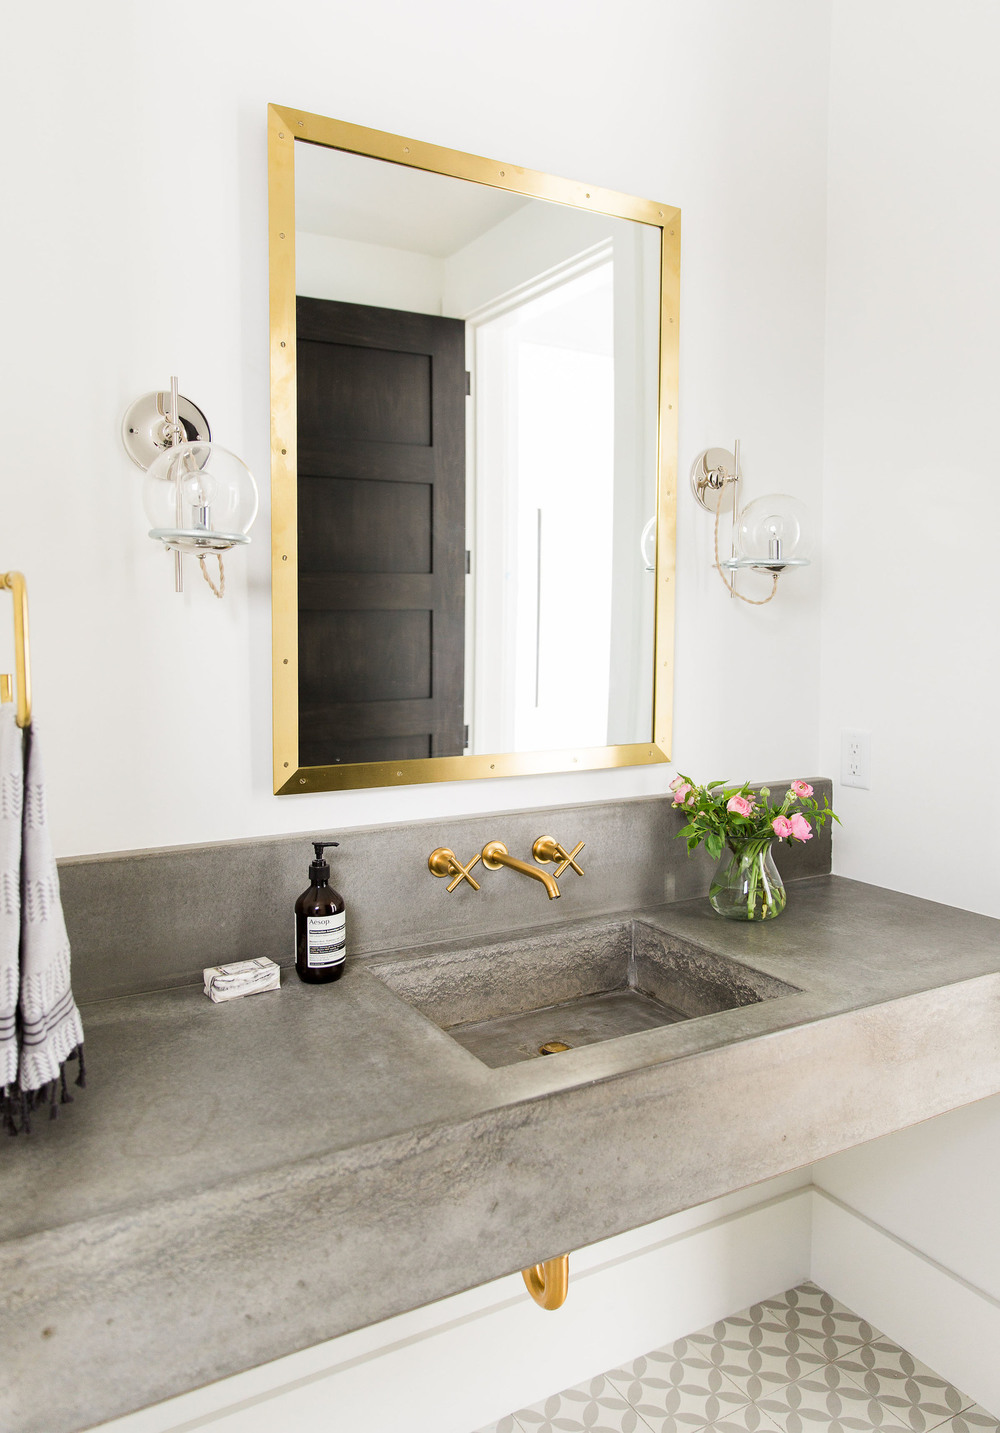 Floating+concrete+sink+and+brass+fixtures+--+Studio+McGee.jpg